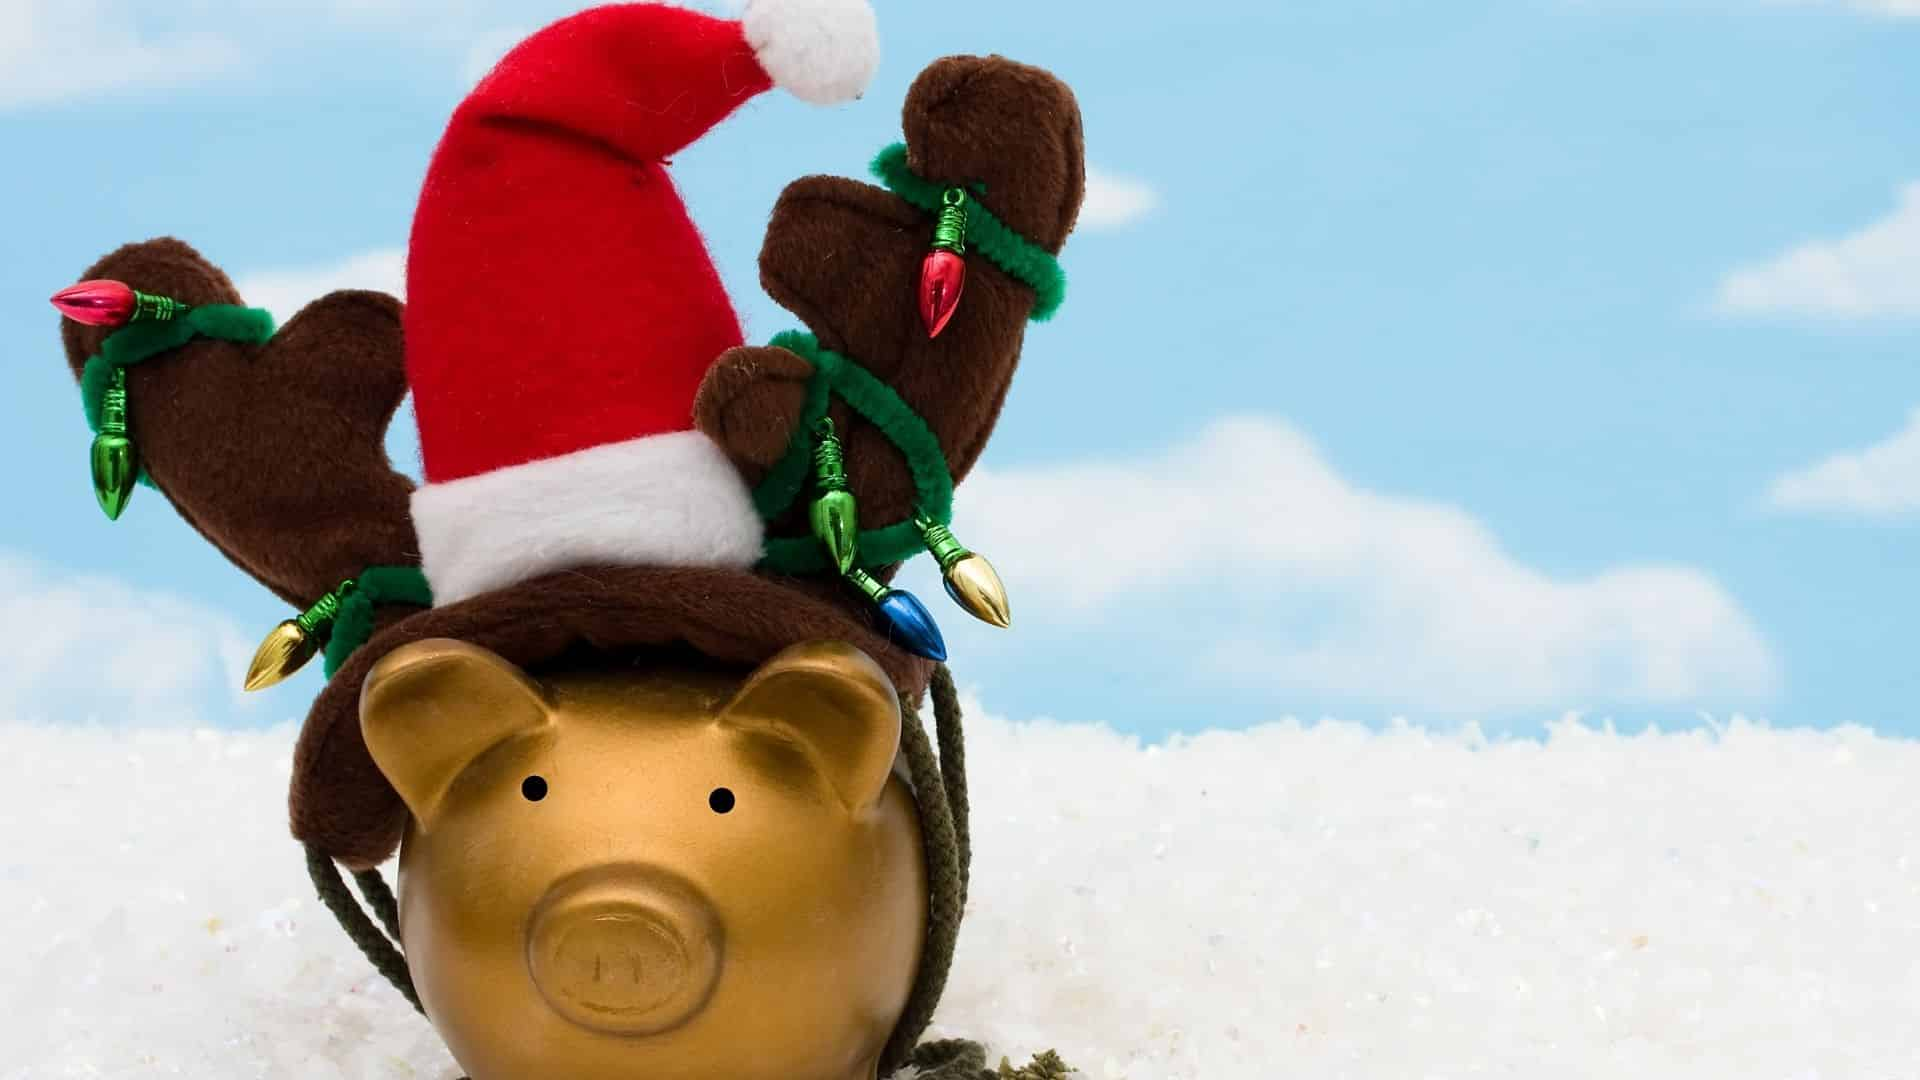 Christmas Piggy Bank To Remind You To Save Money For Christmas